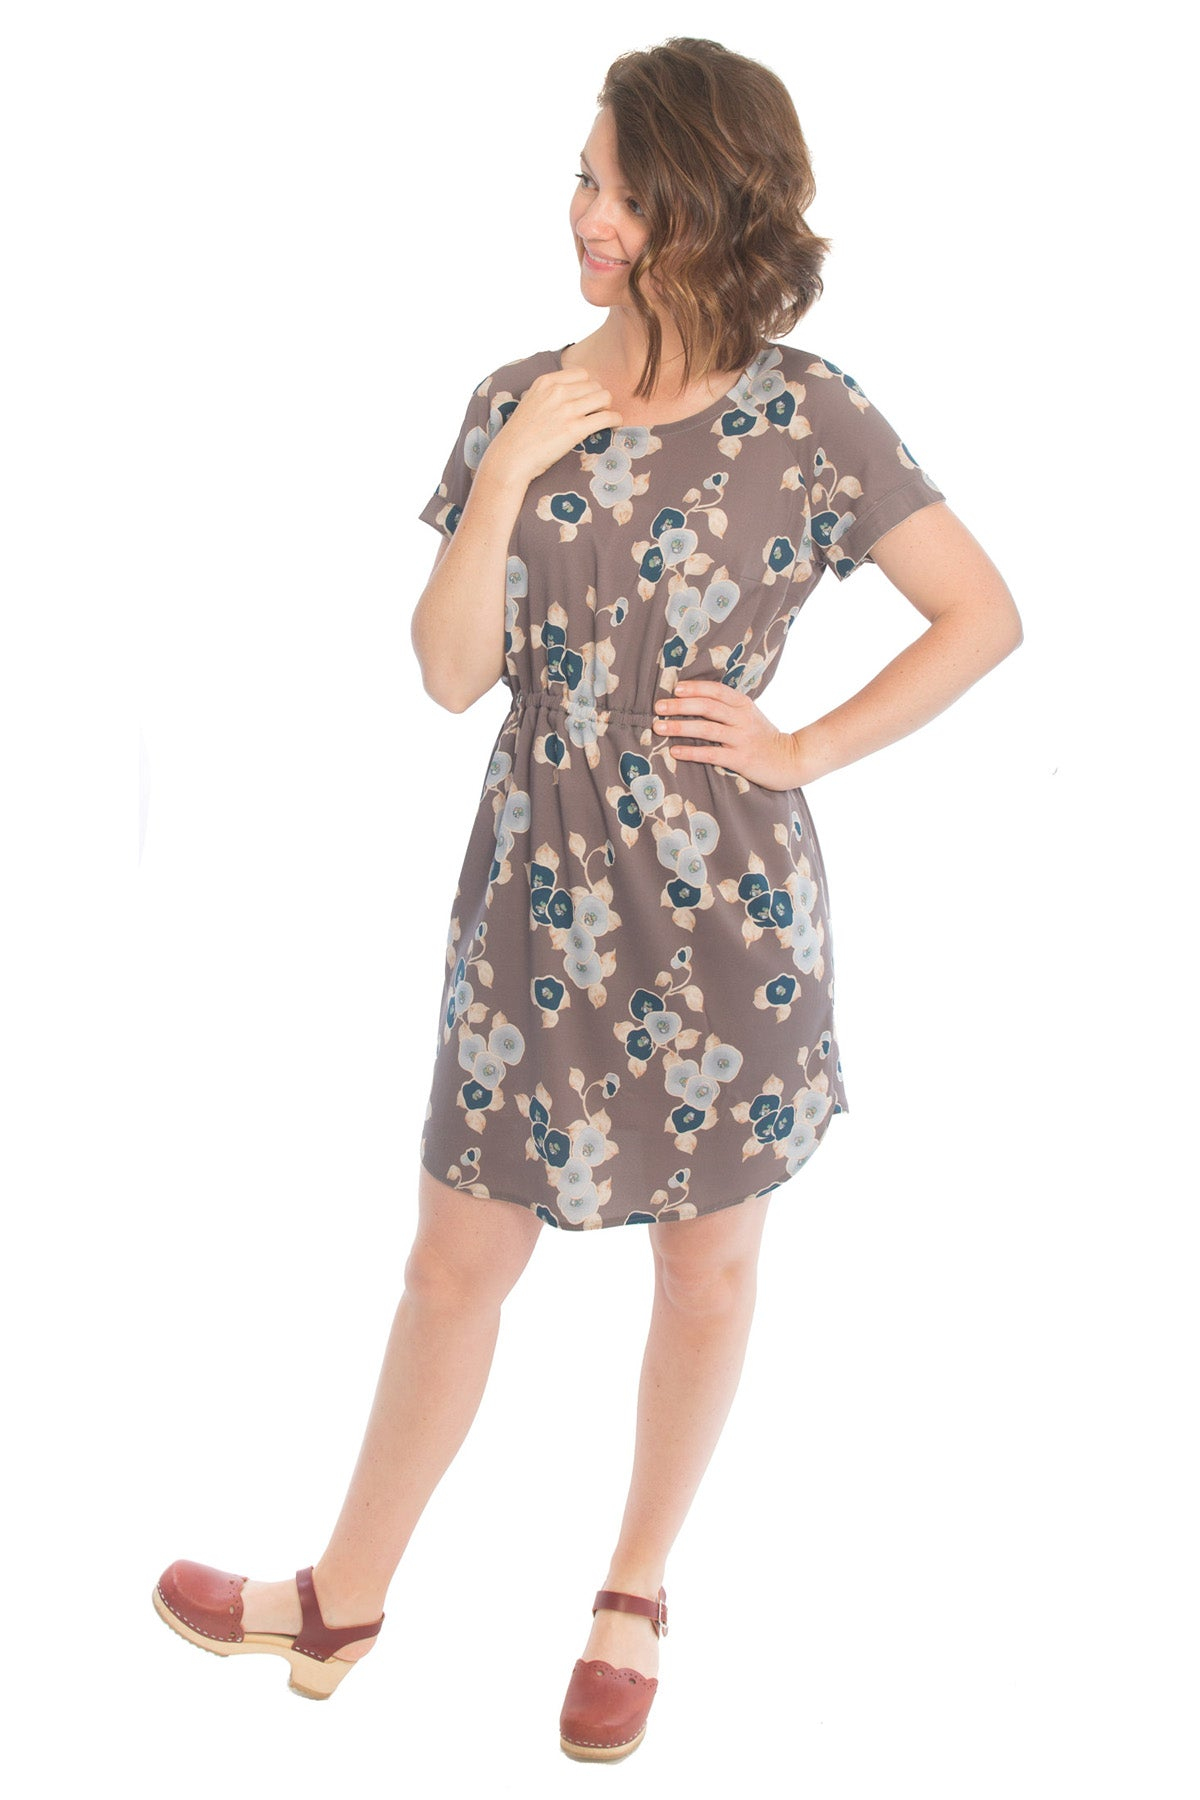 Coram Dress Styled | Allie Olson Sewing Patterns